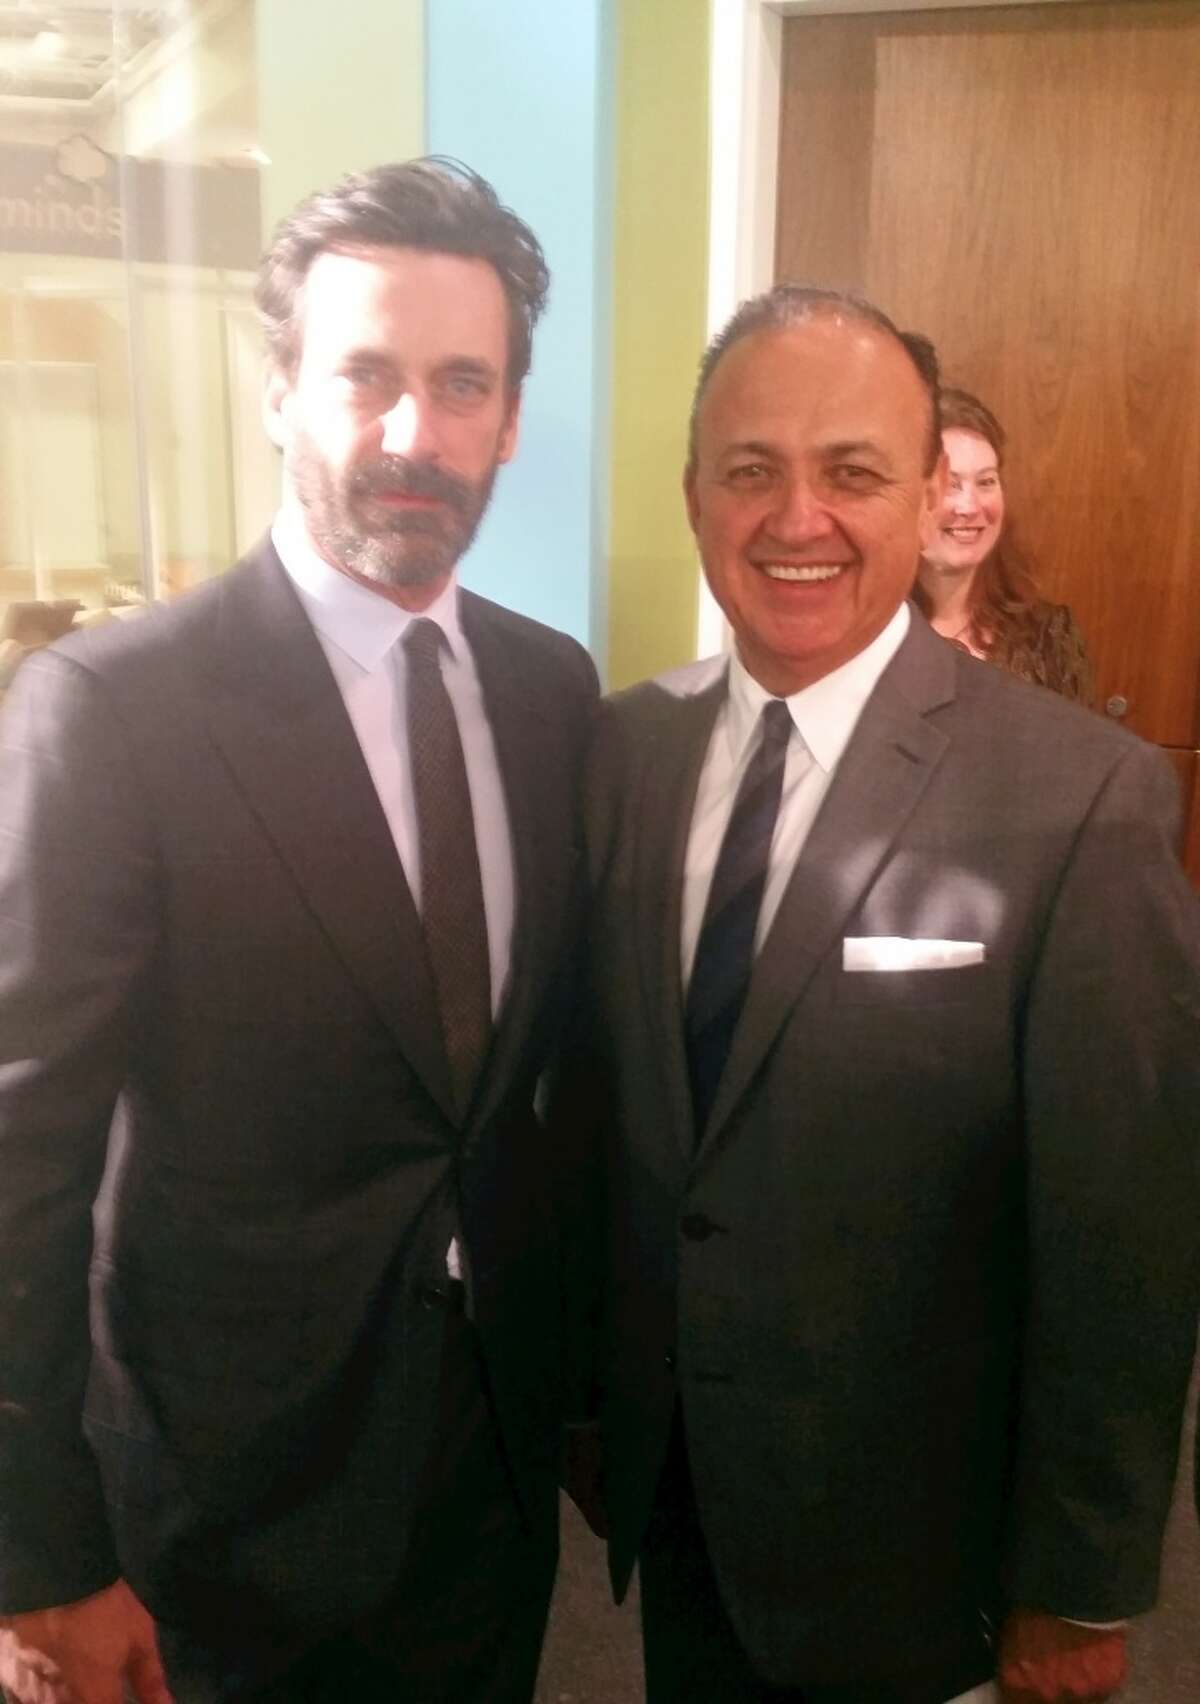 Al Aguilar, a pioneering ad man from San Antonio, met Jon Hamm of 'Mad Men' at the Smithsonian, where the show donated many of its props and artifacts.